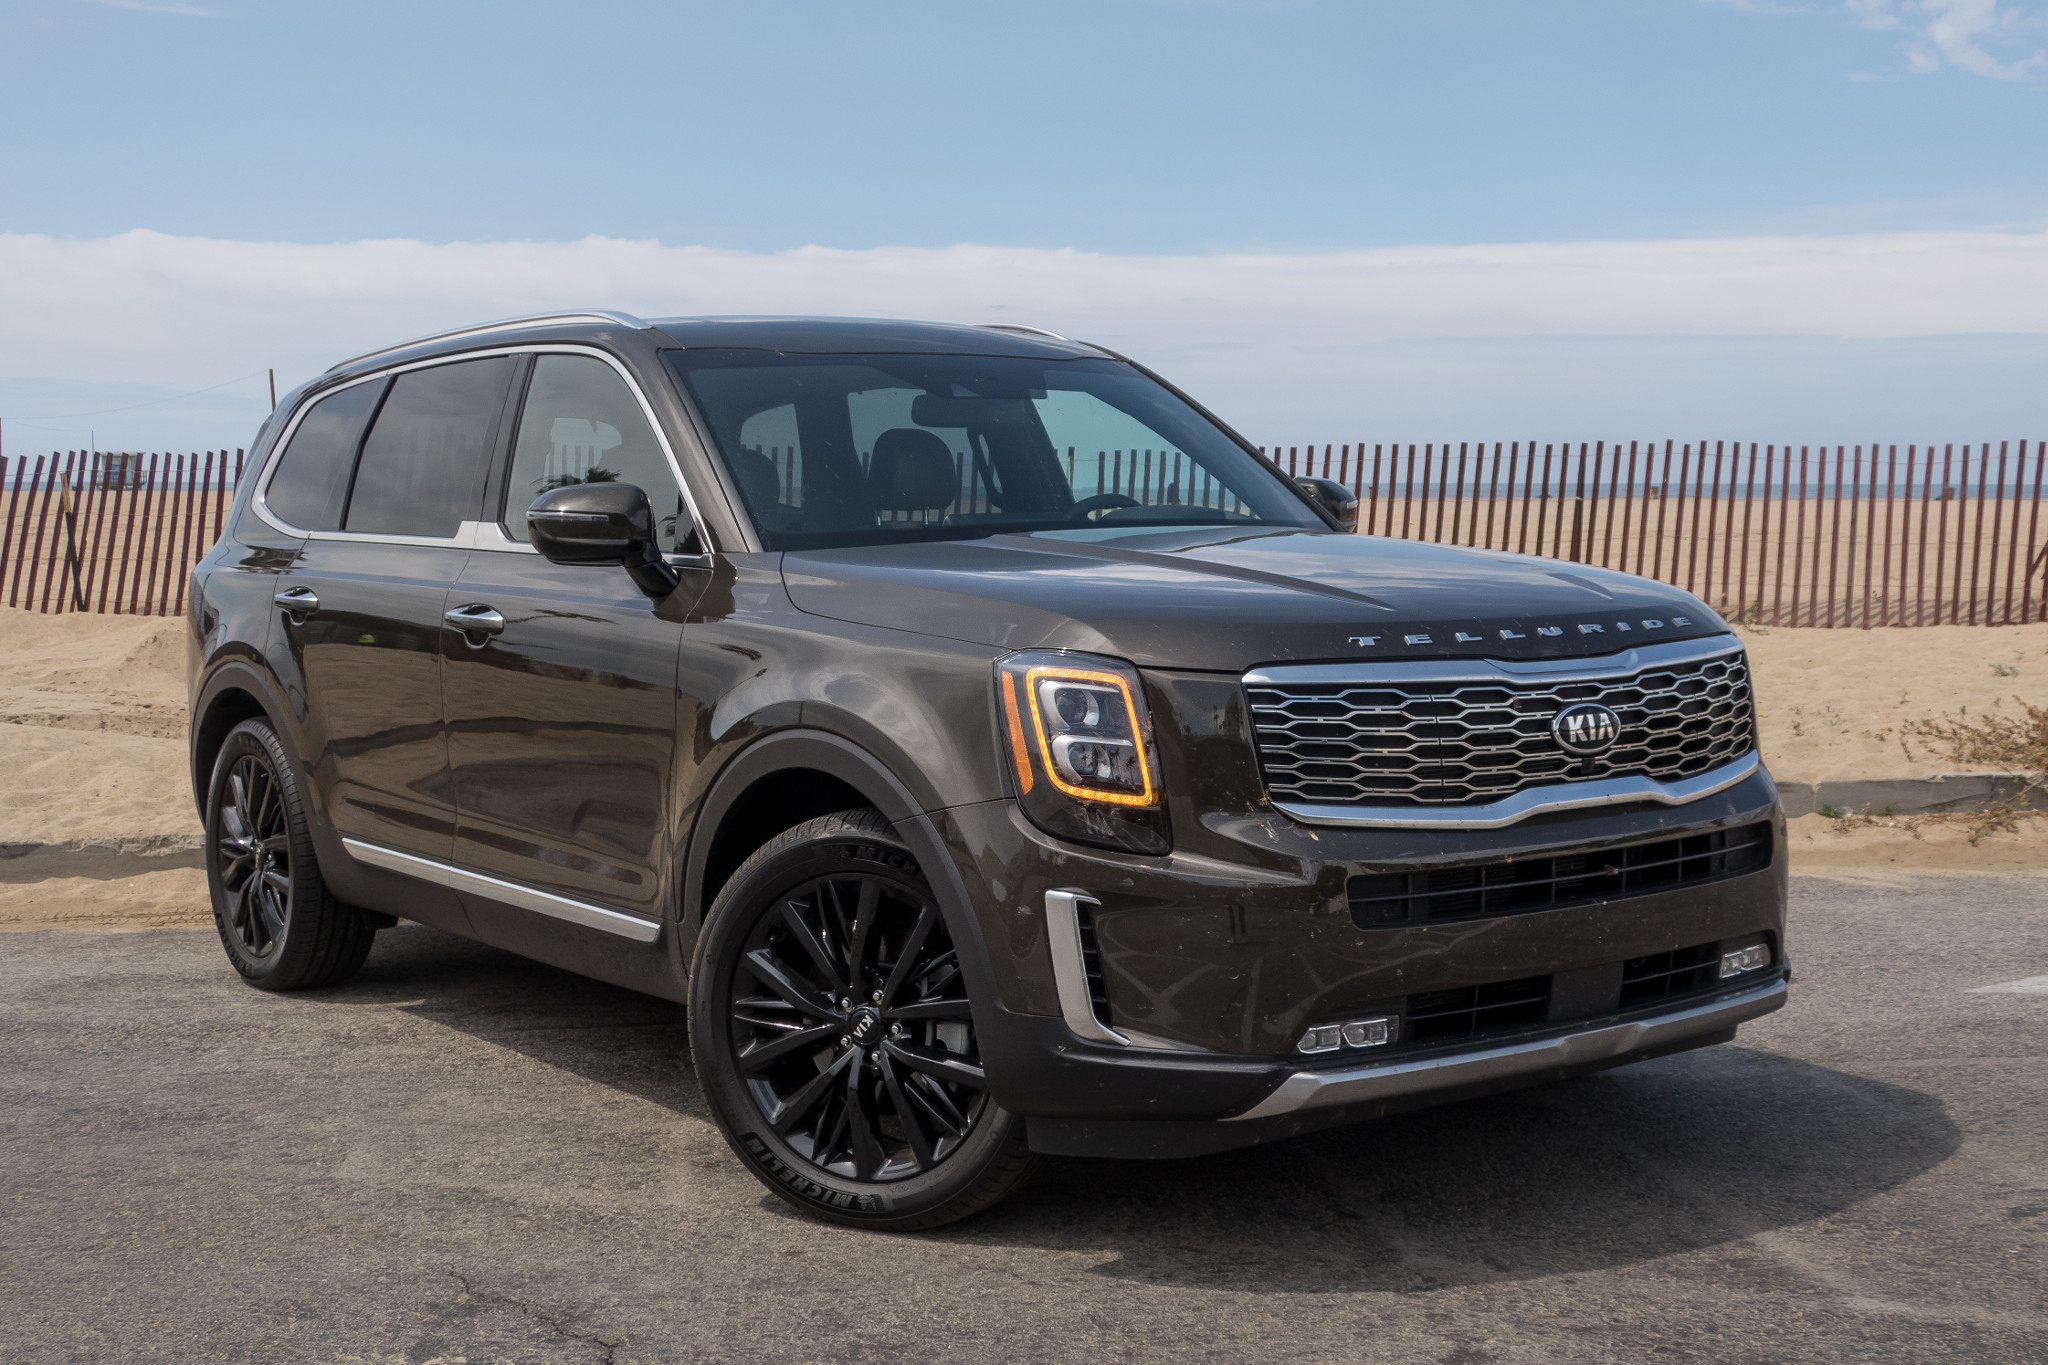 72 All New When Does The 2020 Kia Telluride Come Out Price